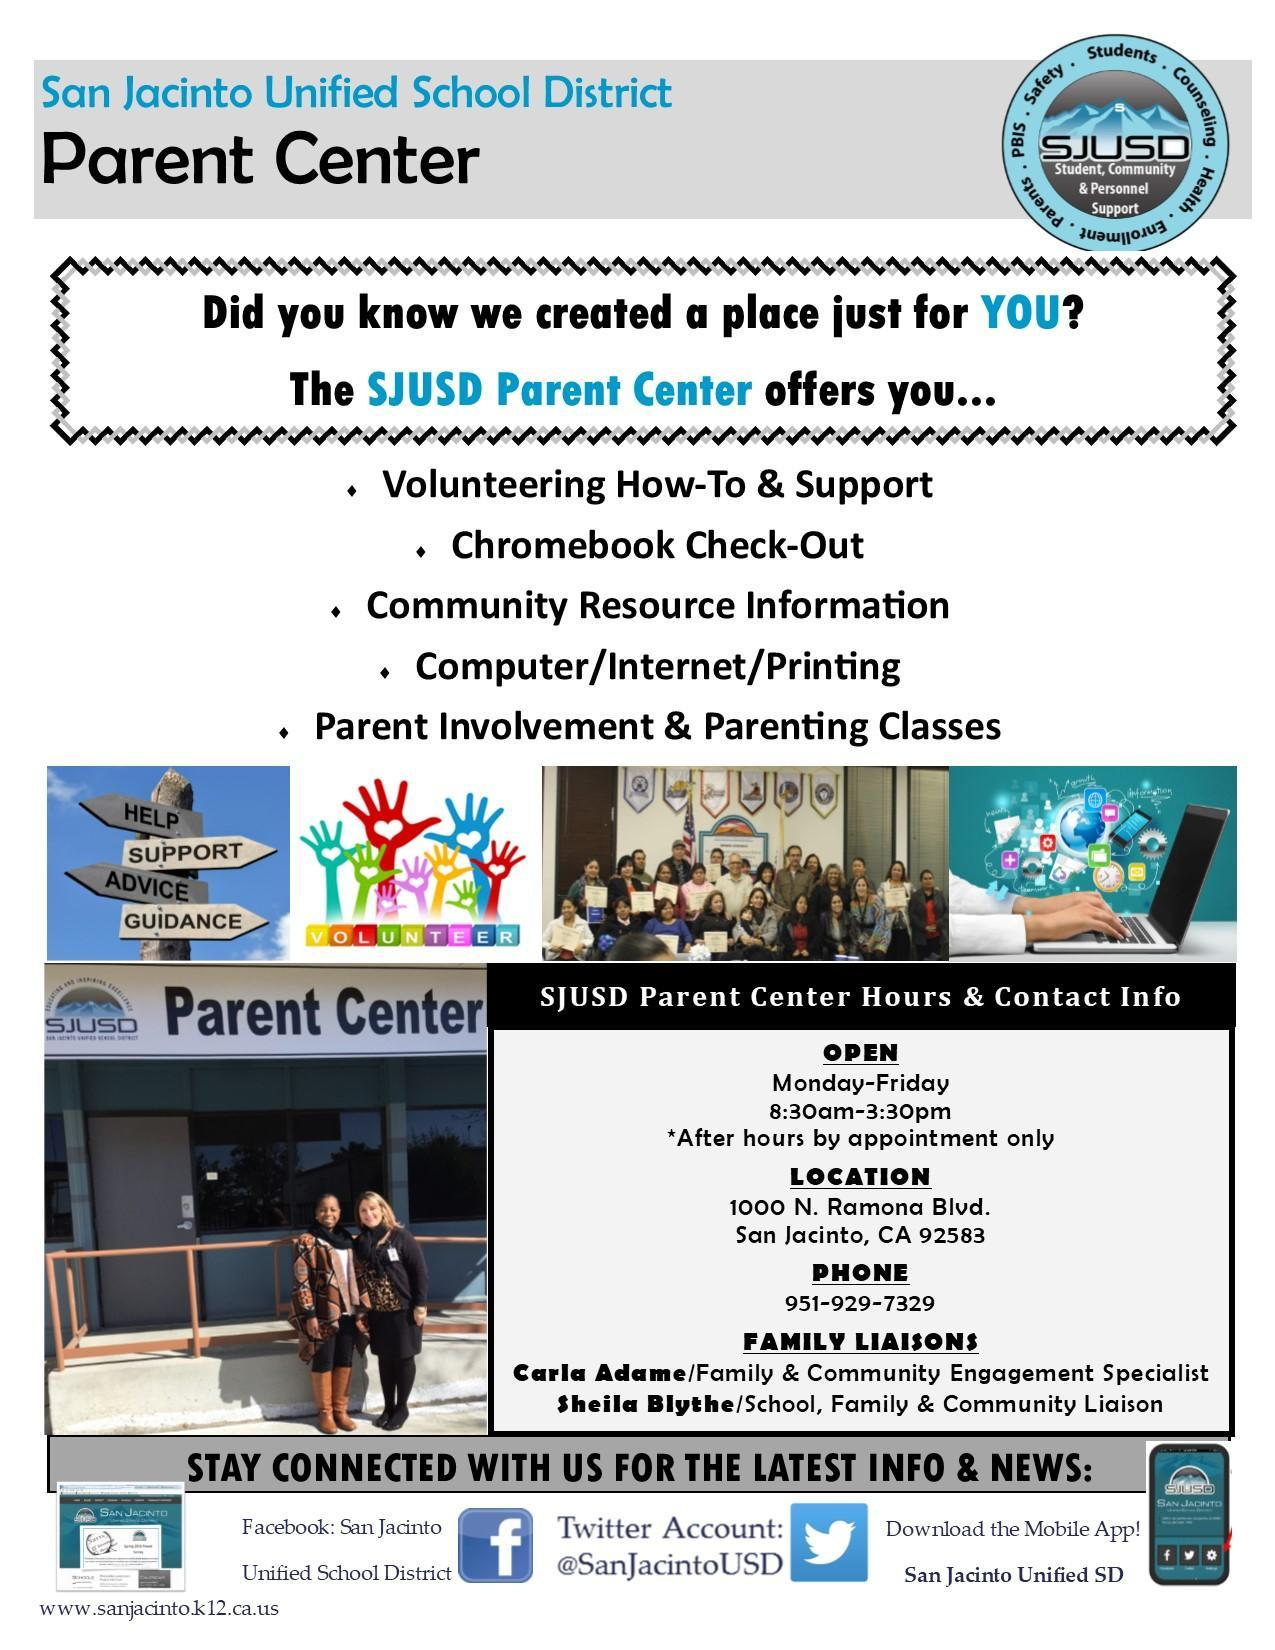 Parent Center Handout re Services